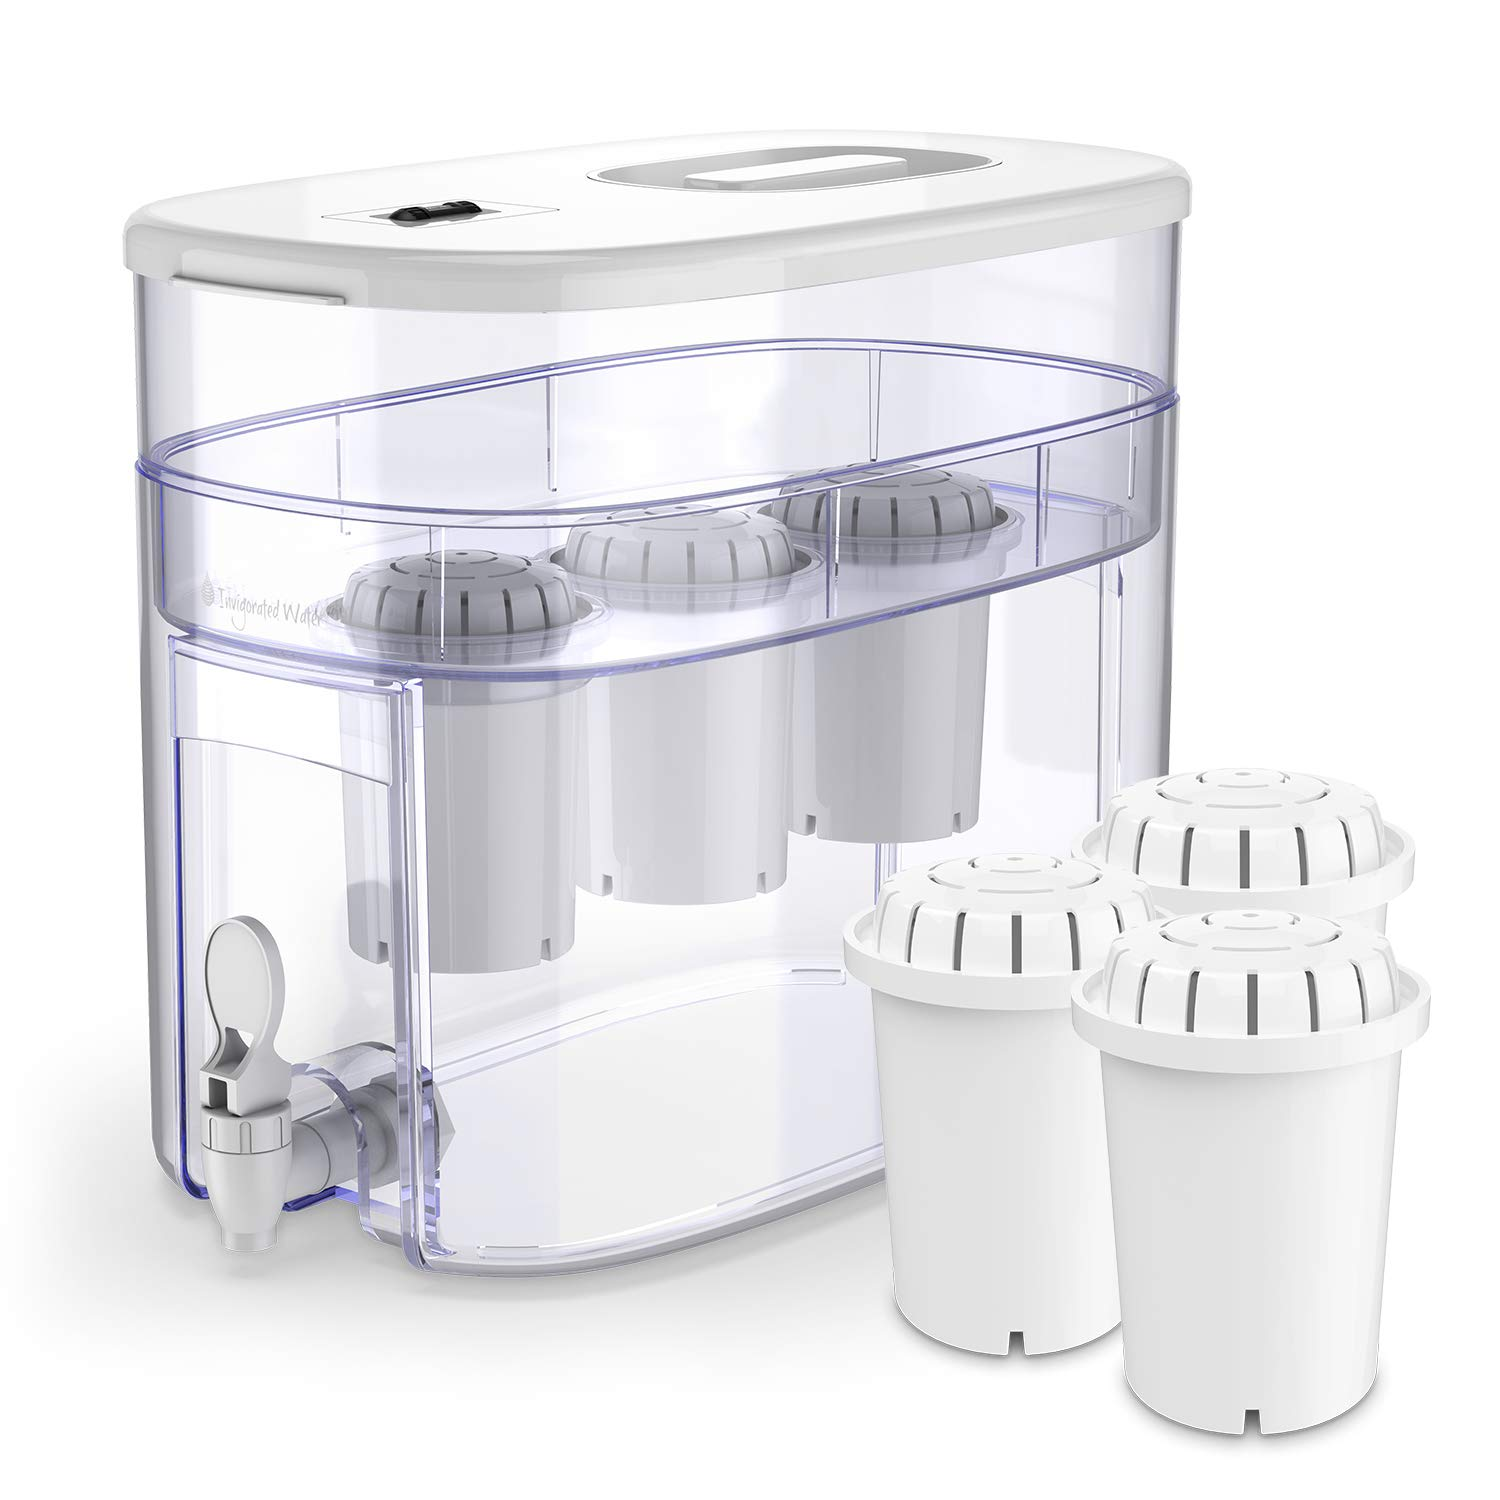 pH Recharge 3F Countertop Alkaline Water Filter Ionizer Plus 3-Pack Replacement Water Filters